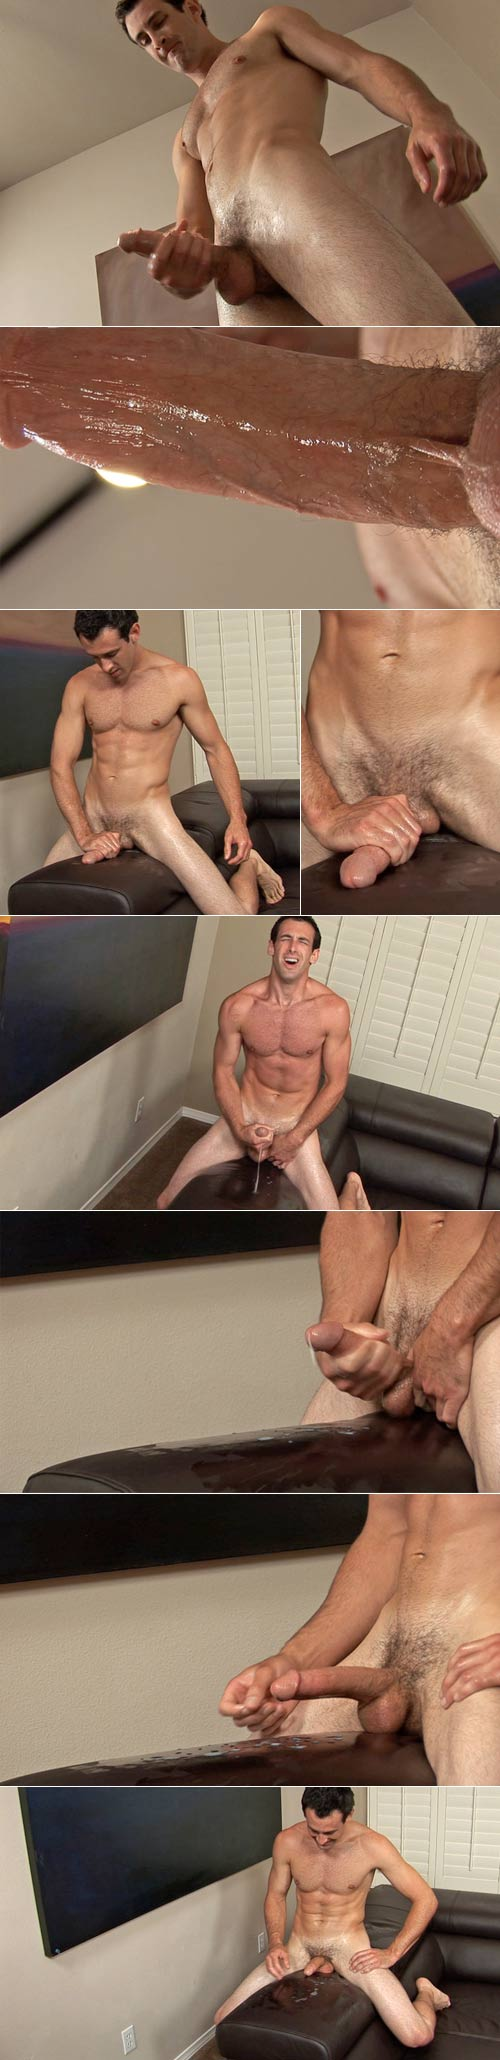 Jacob at SeanCody